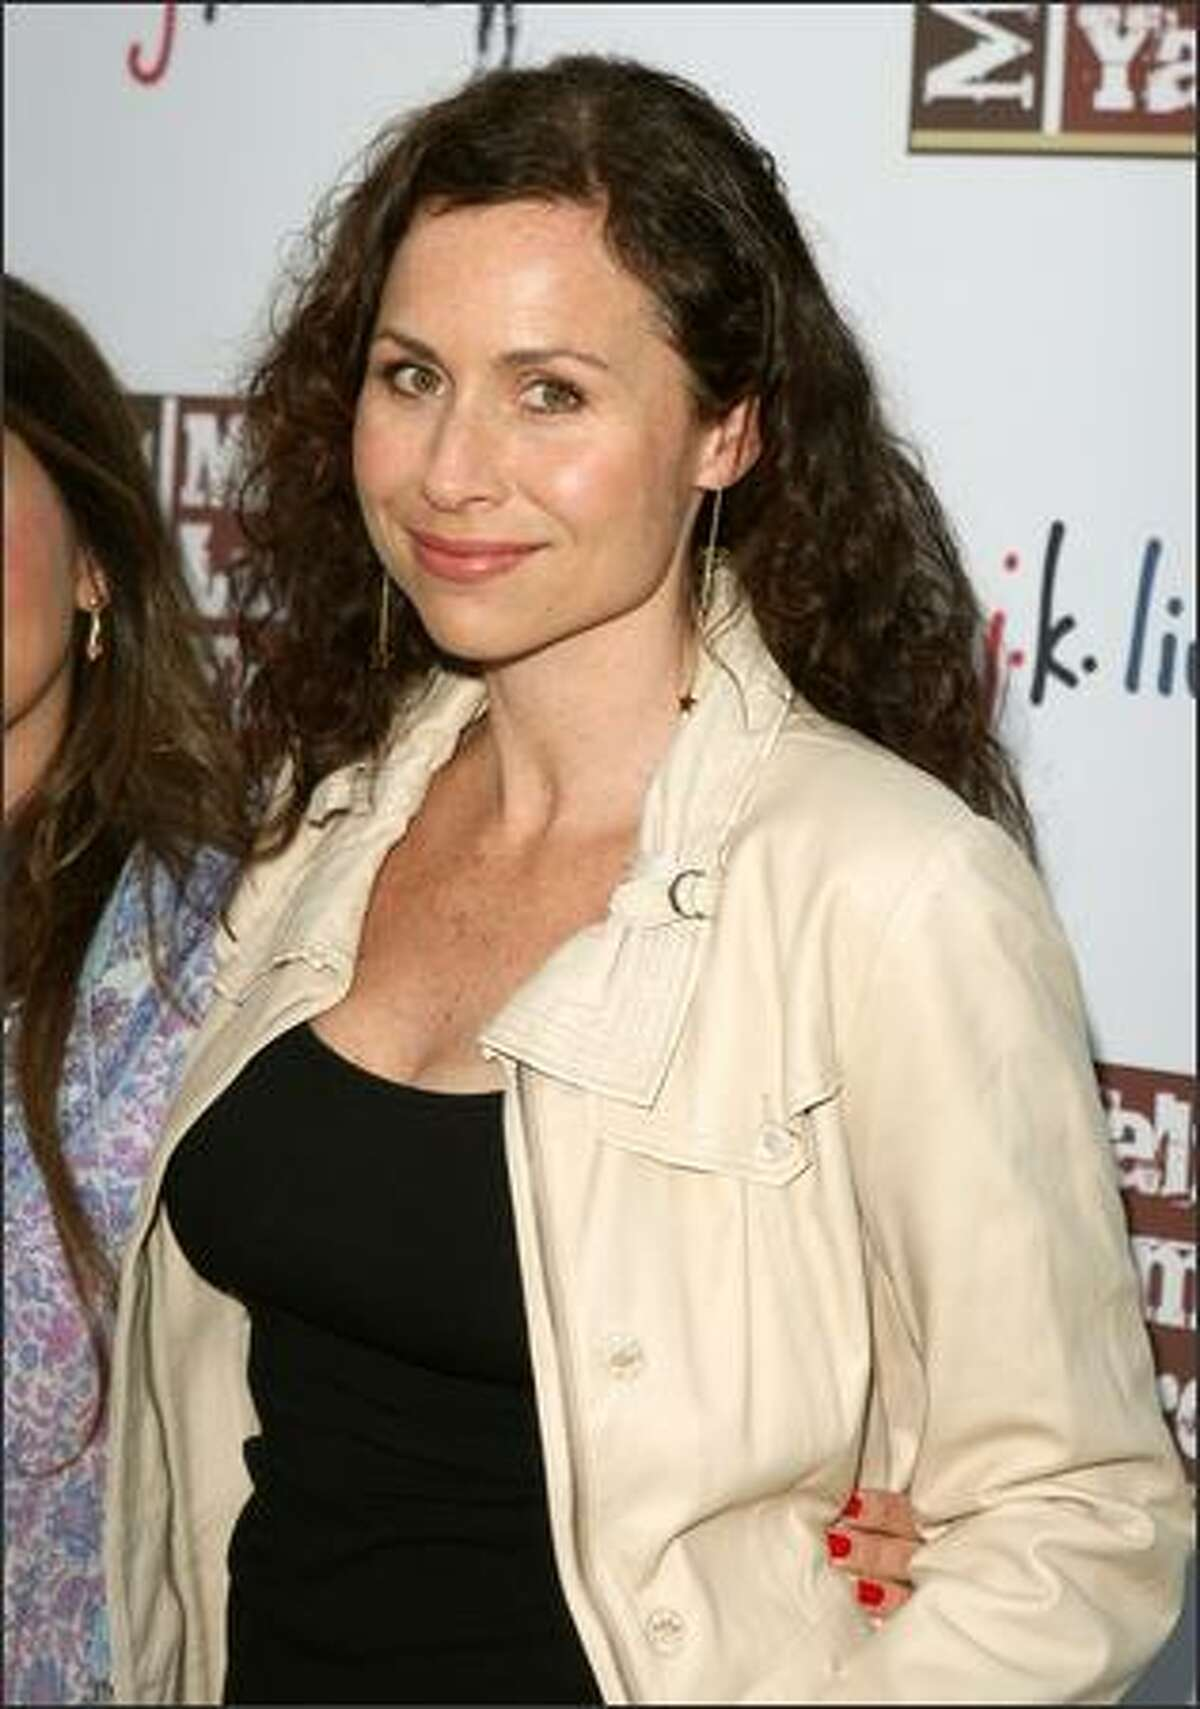 Actress Minnie Driver attends the Malibu Lumber Yard grand opening held at the Malibu Lumber Yard in Malibu, Calif.